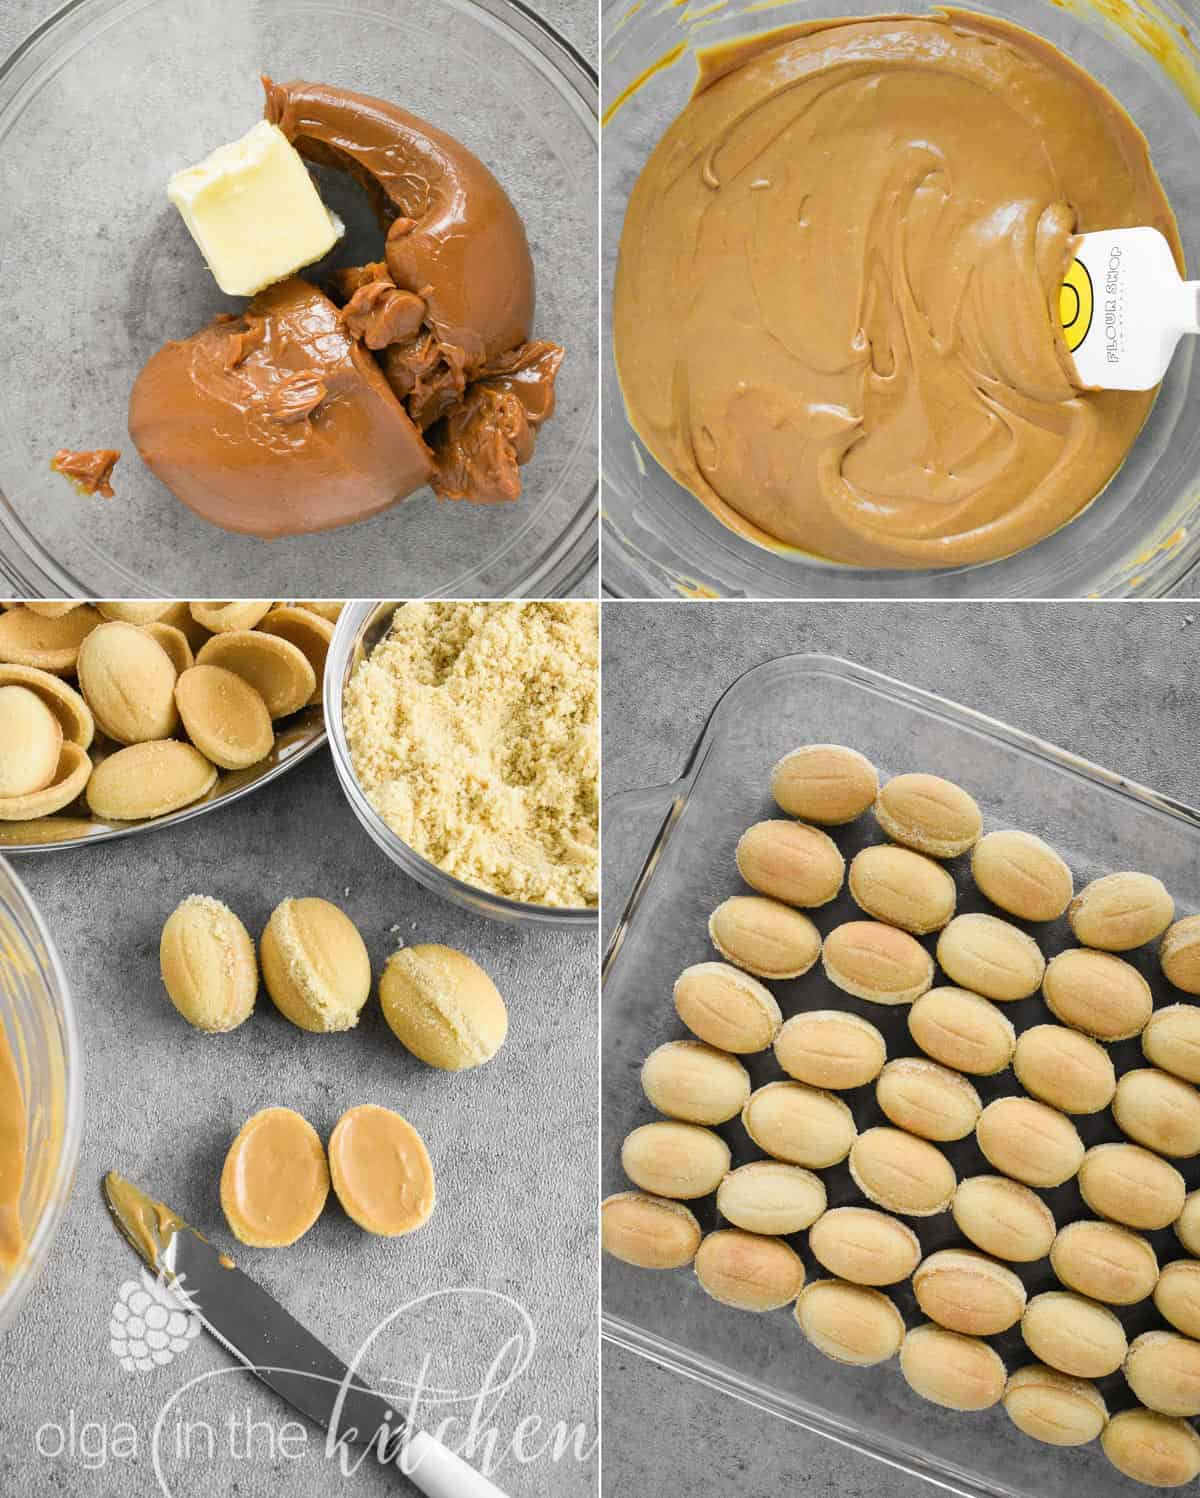 Oreshki are the traditional crisp and flaky walnut shaped cookies filled with dulce de leche filling. These beautiful delights are the iconic treats for Slavic families, especially during holidays and special occasions.   olgainthekitchen.com